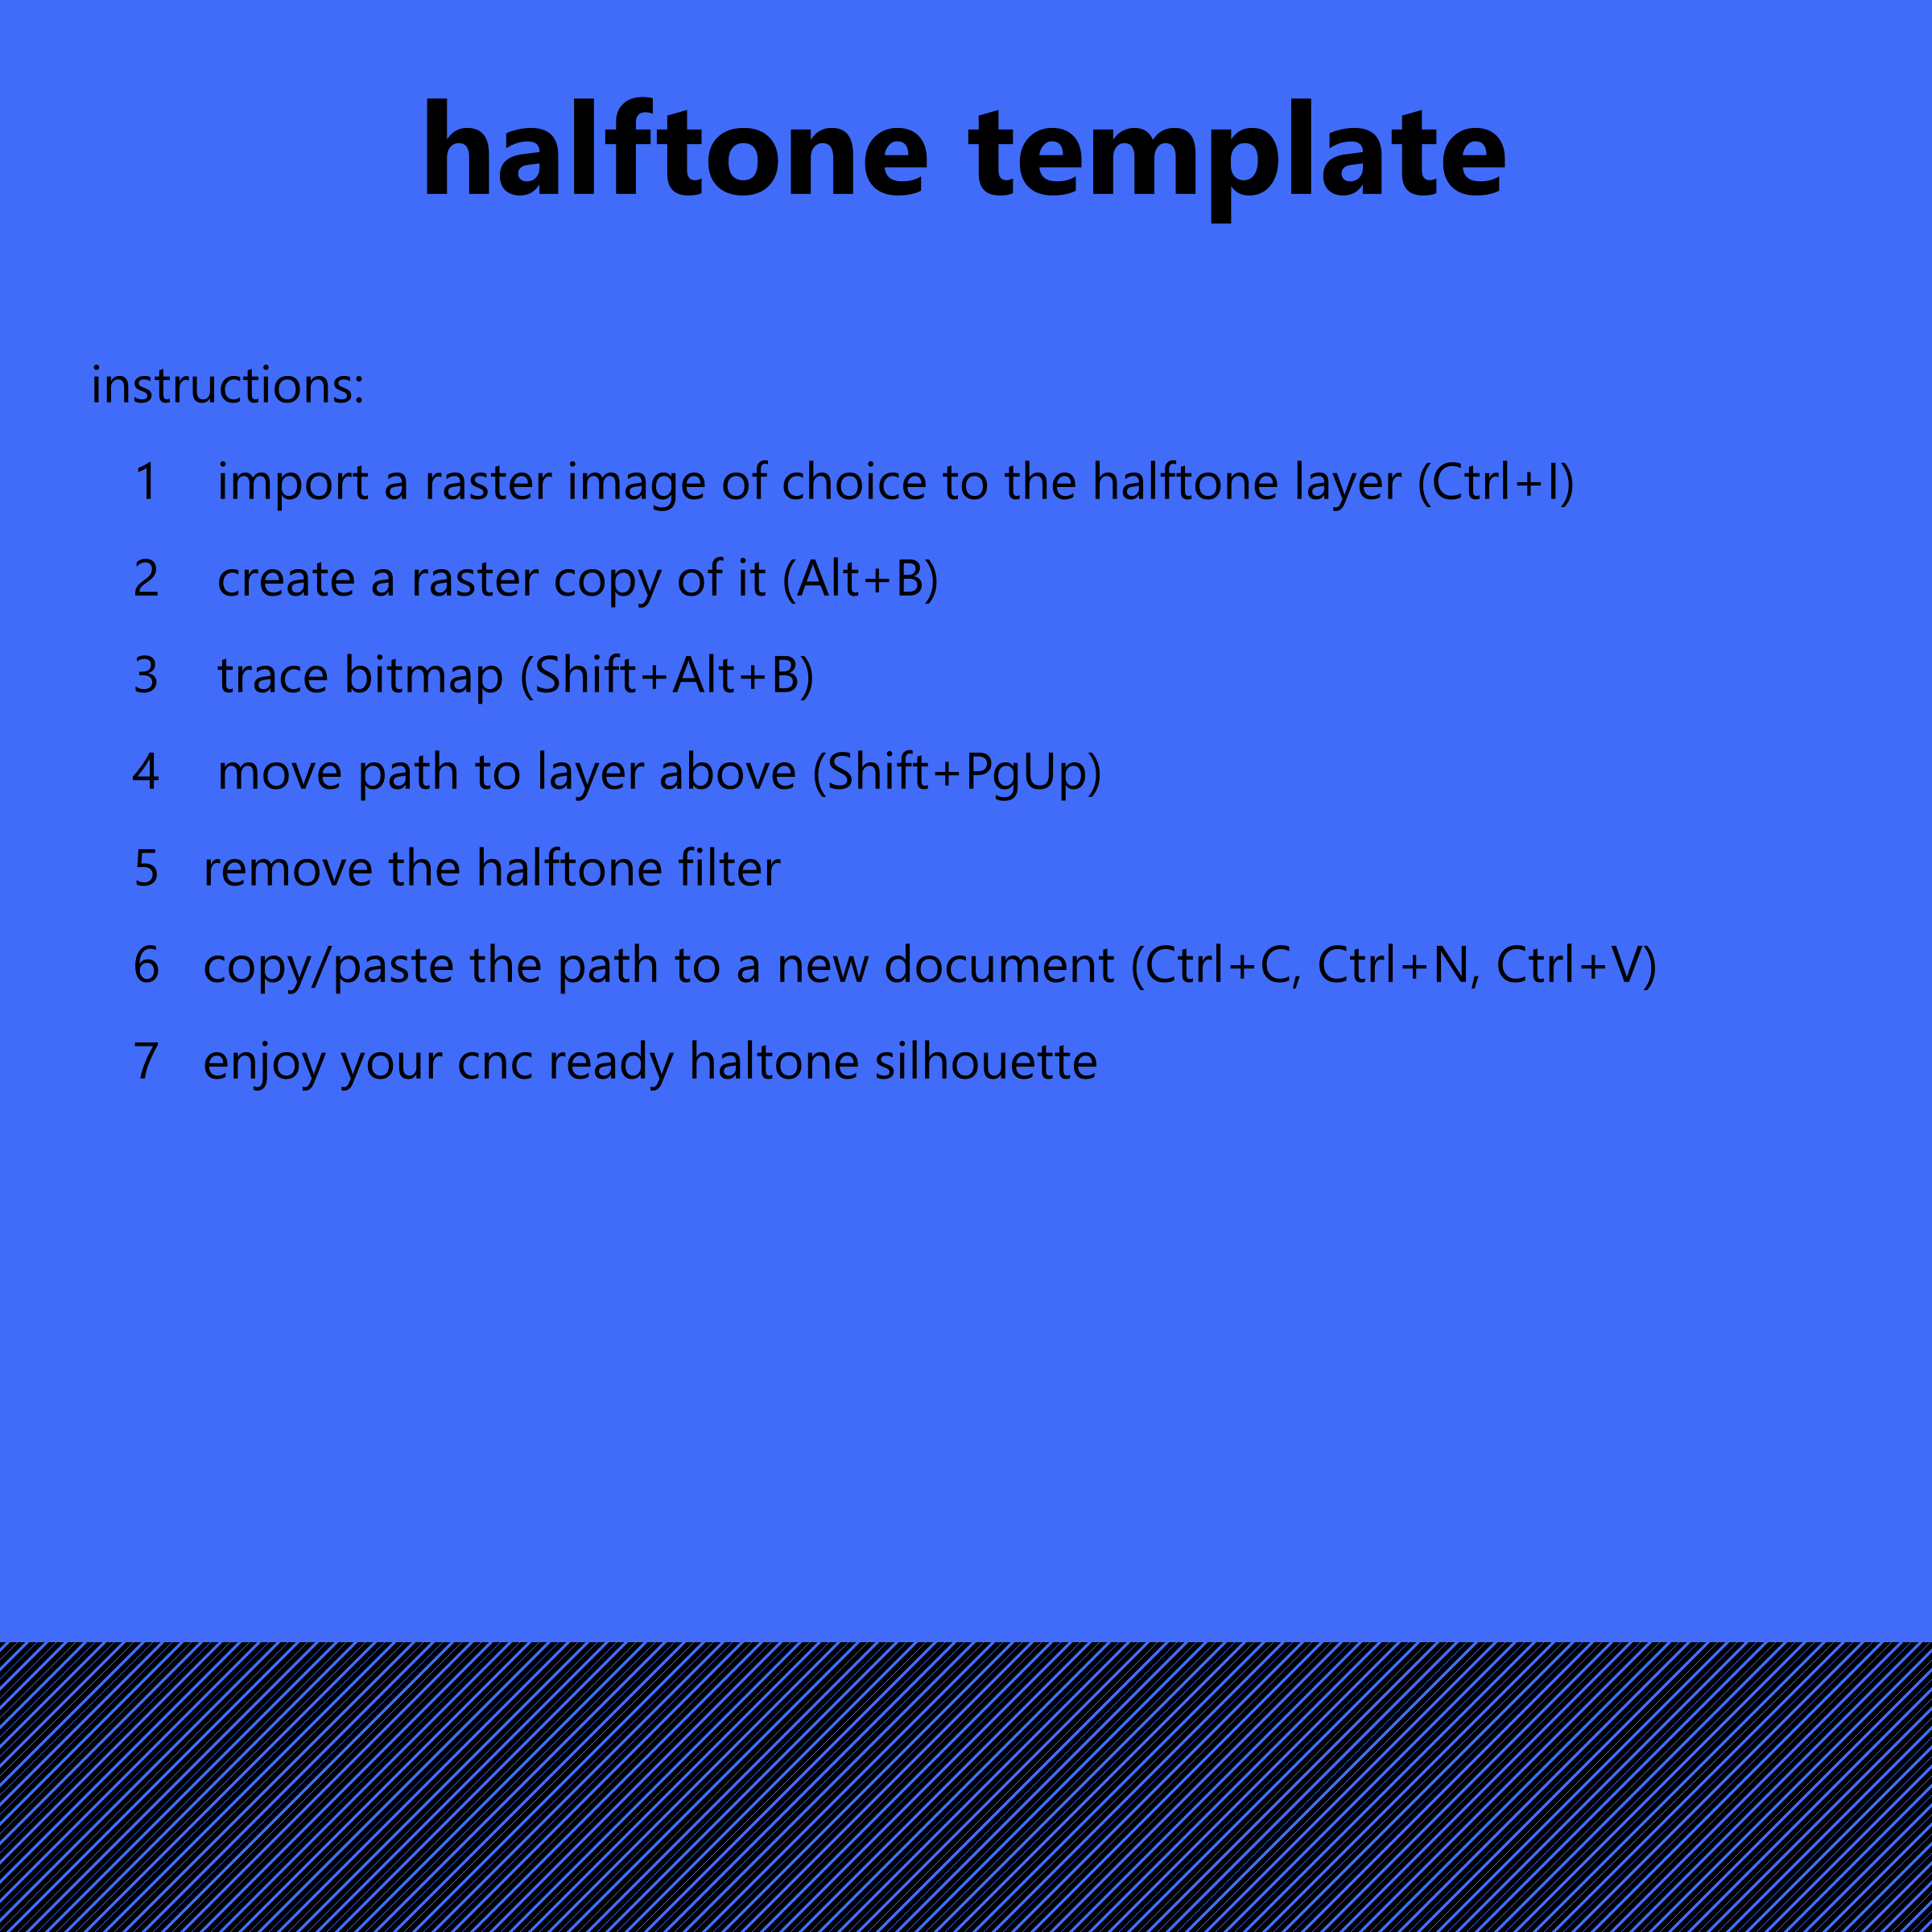 halftone template by Lazur URH